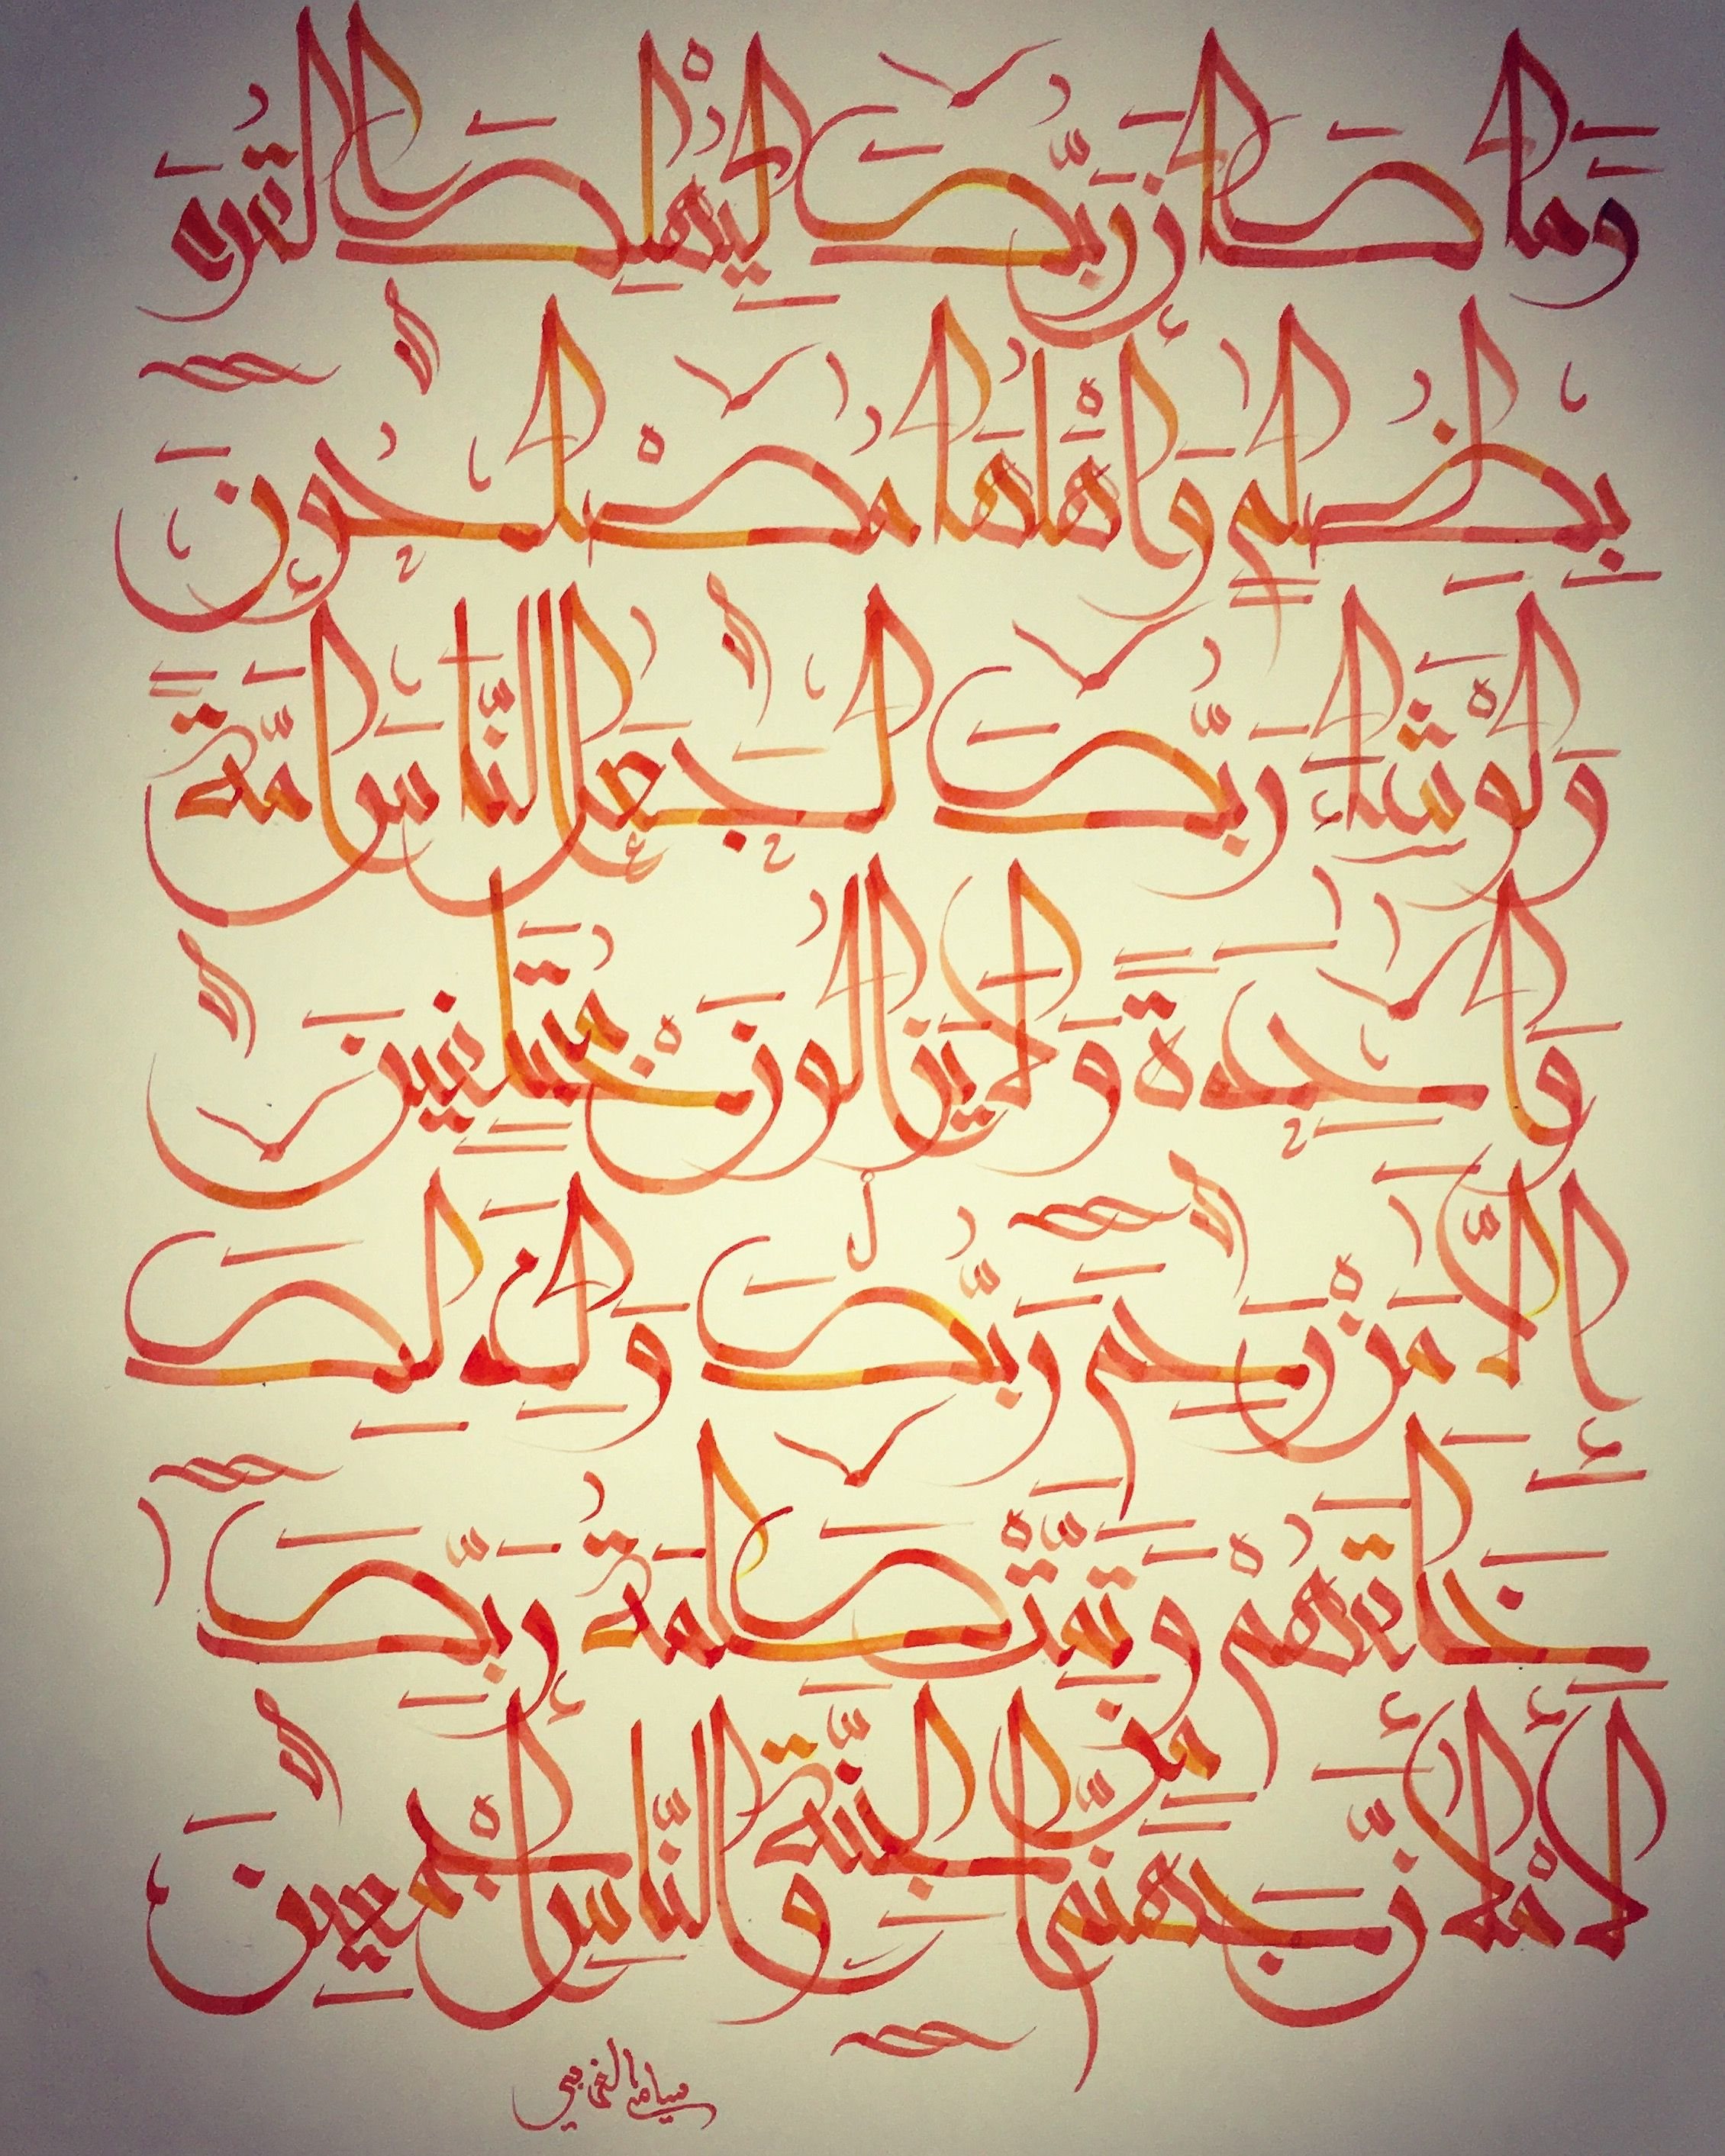 Pin By Adam Idris On Arabic Calligraphy On Paper Calligraphy Art Arabic Calligraphy Art Painting